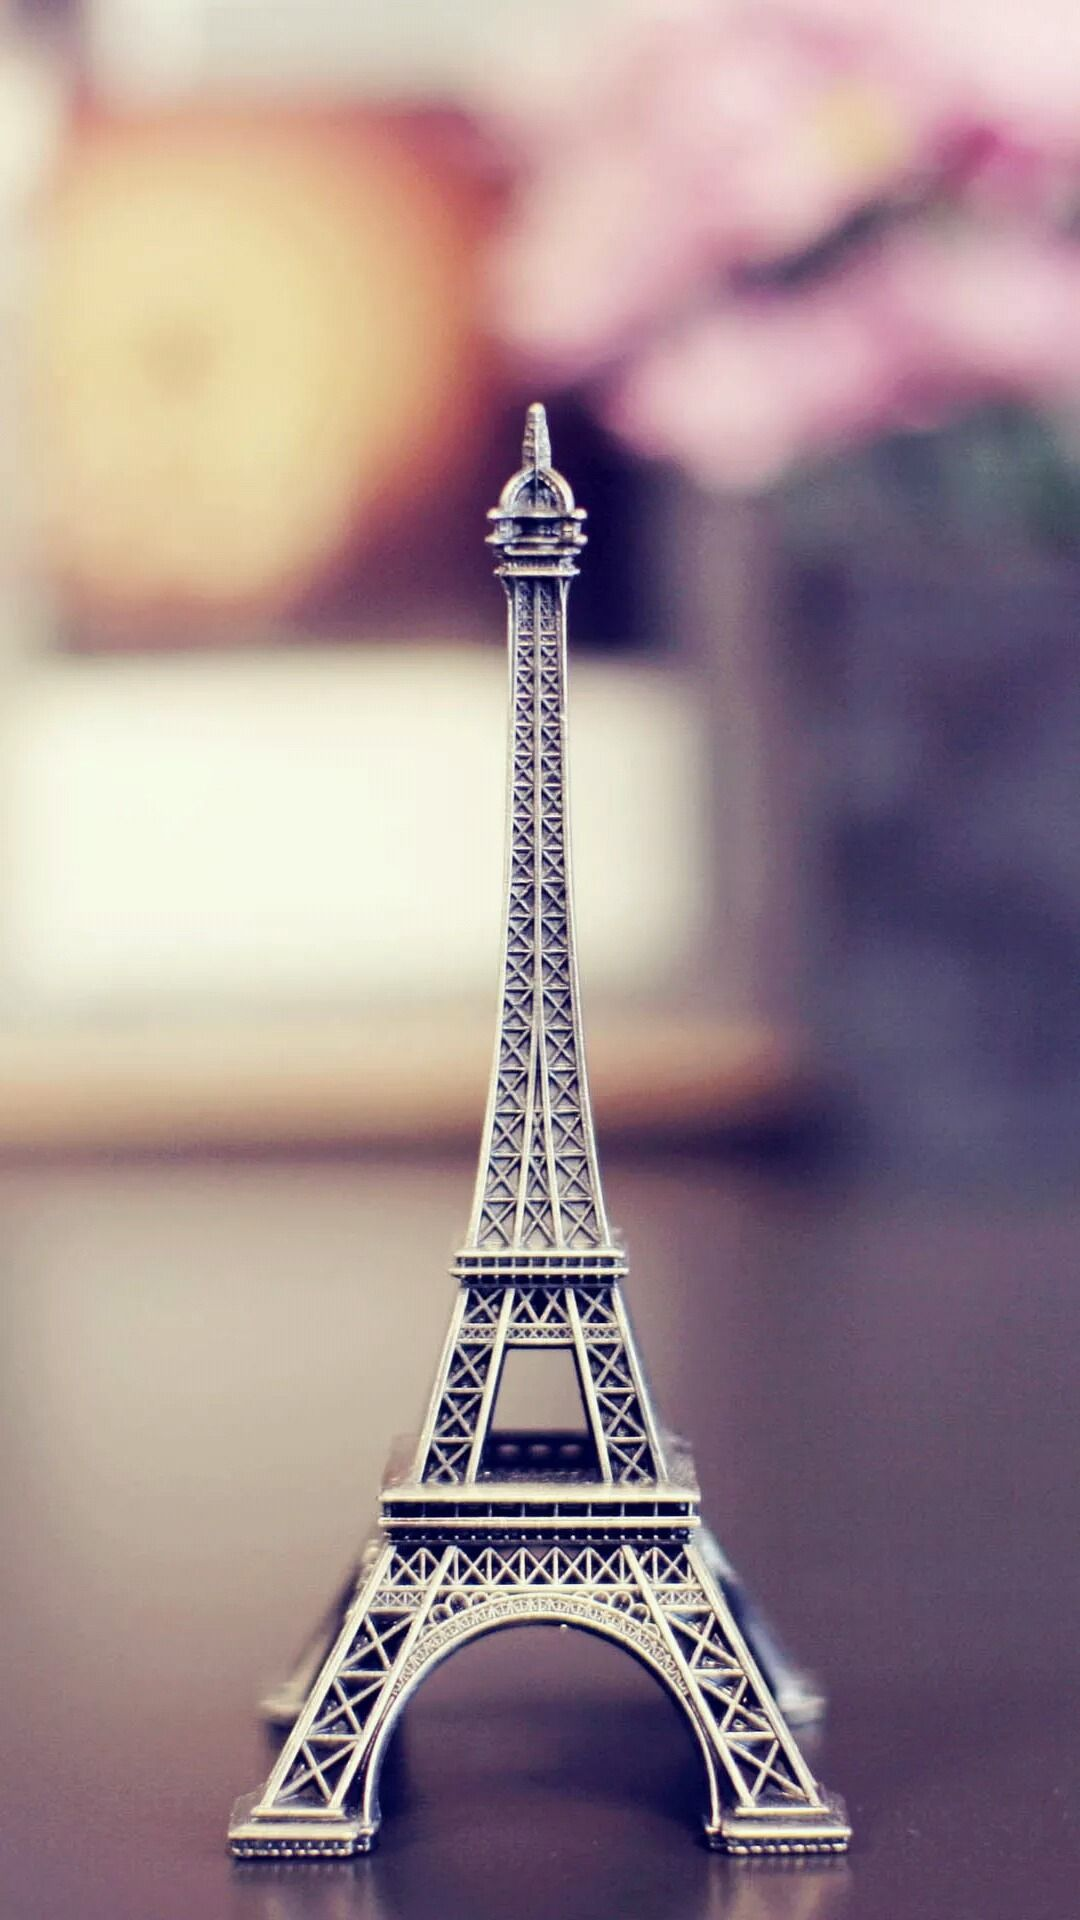 Vintage Eiffel Tower Paris Iphone Wallpapers Romance City Tap To